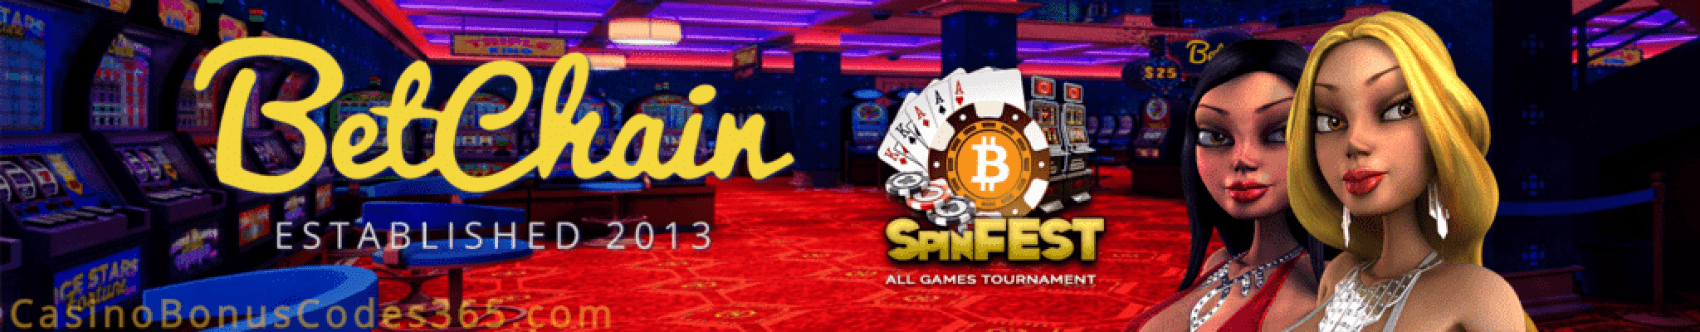 Betchain Casino Spin Fest Tournament